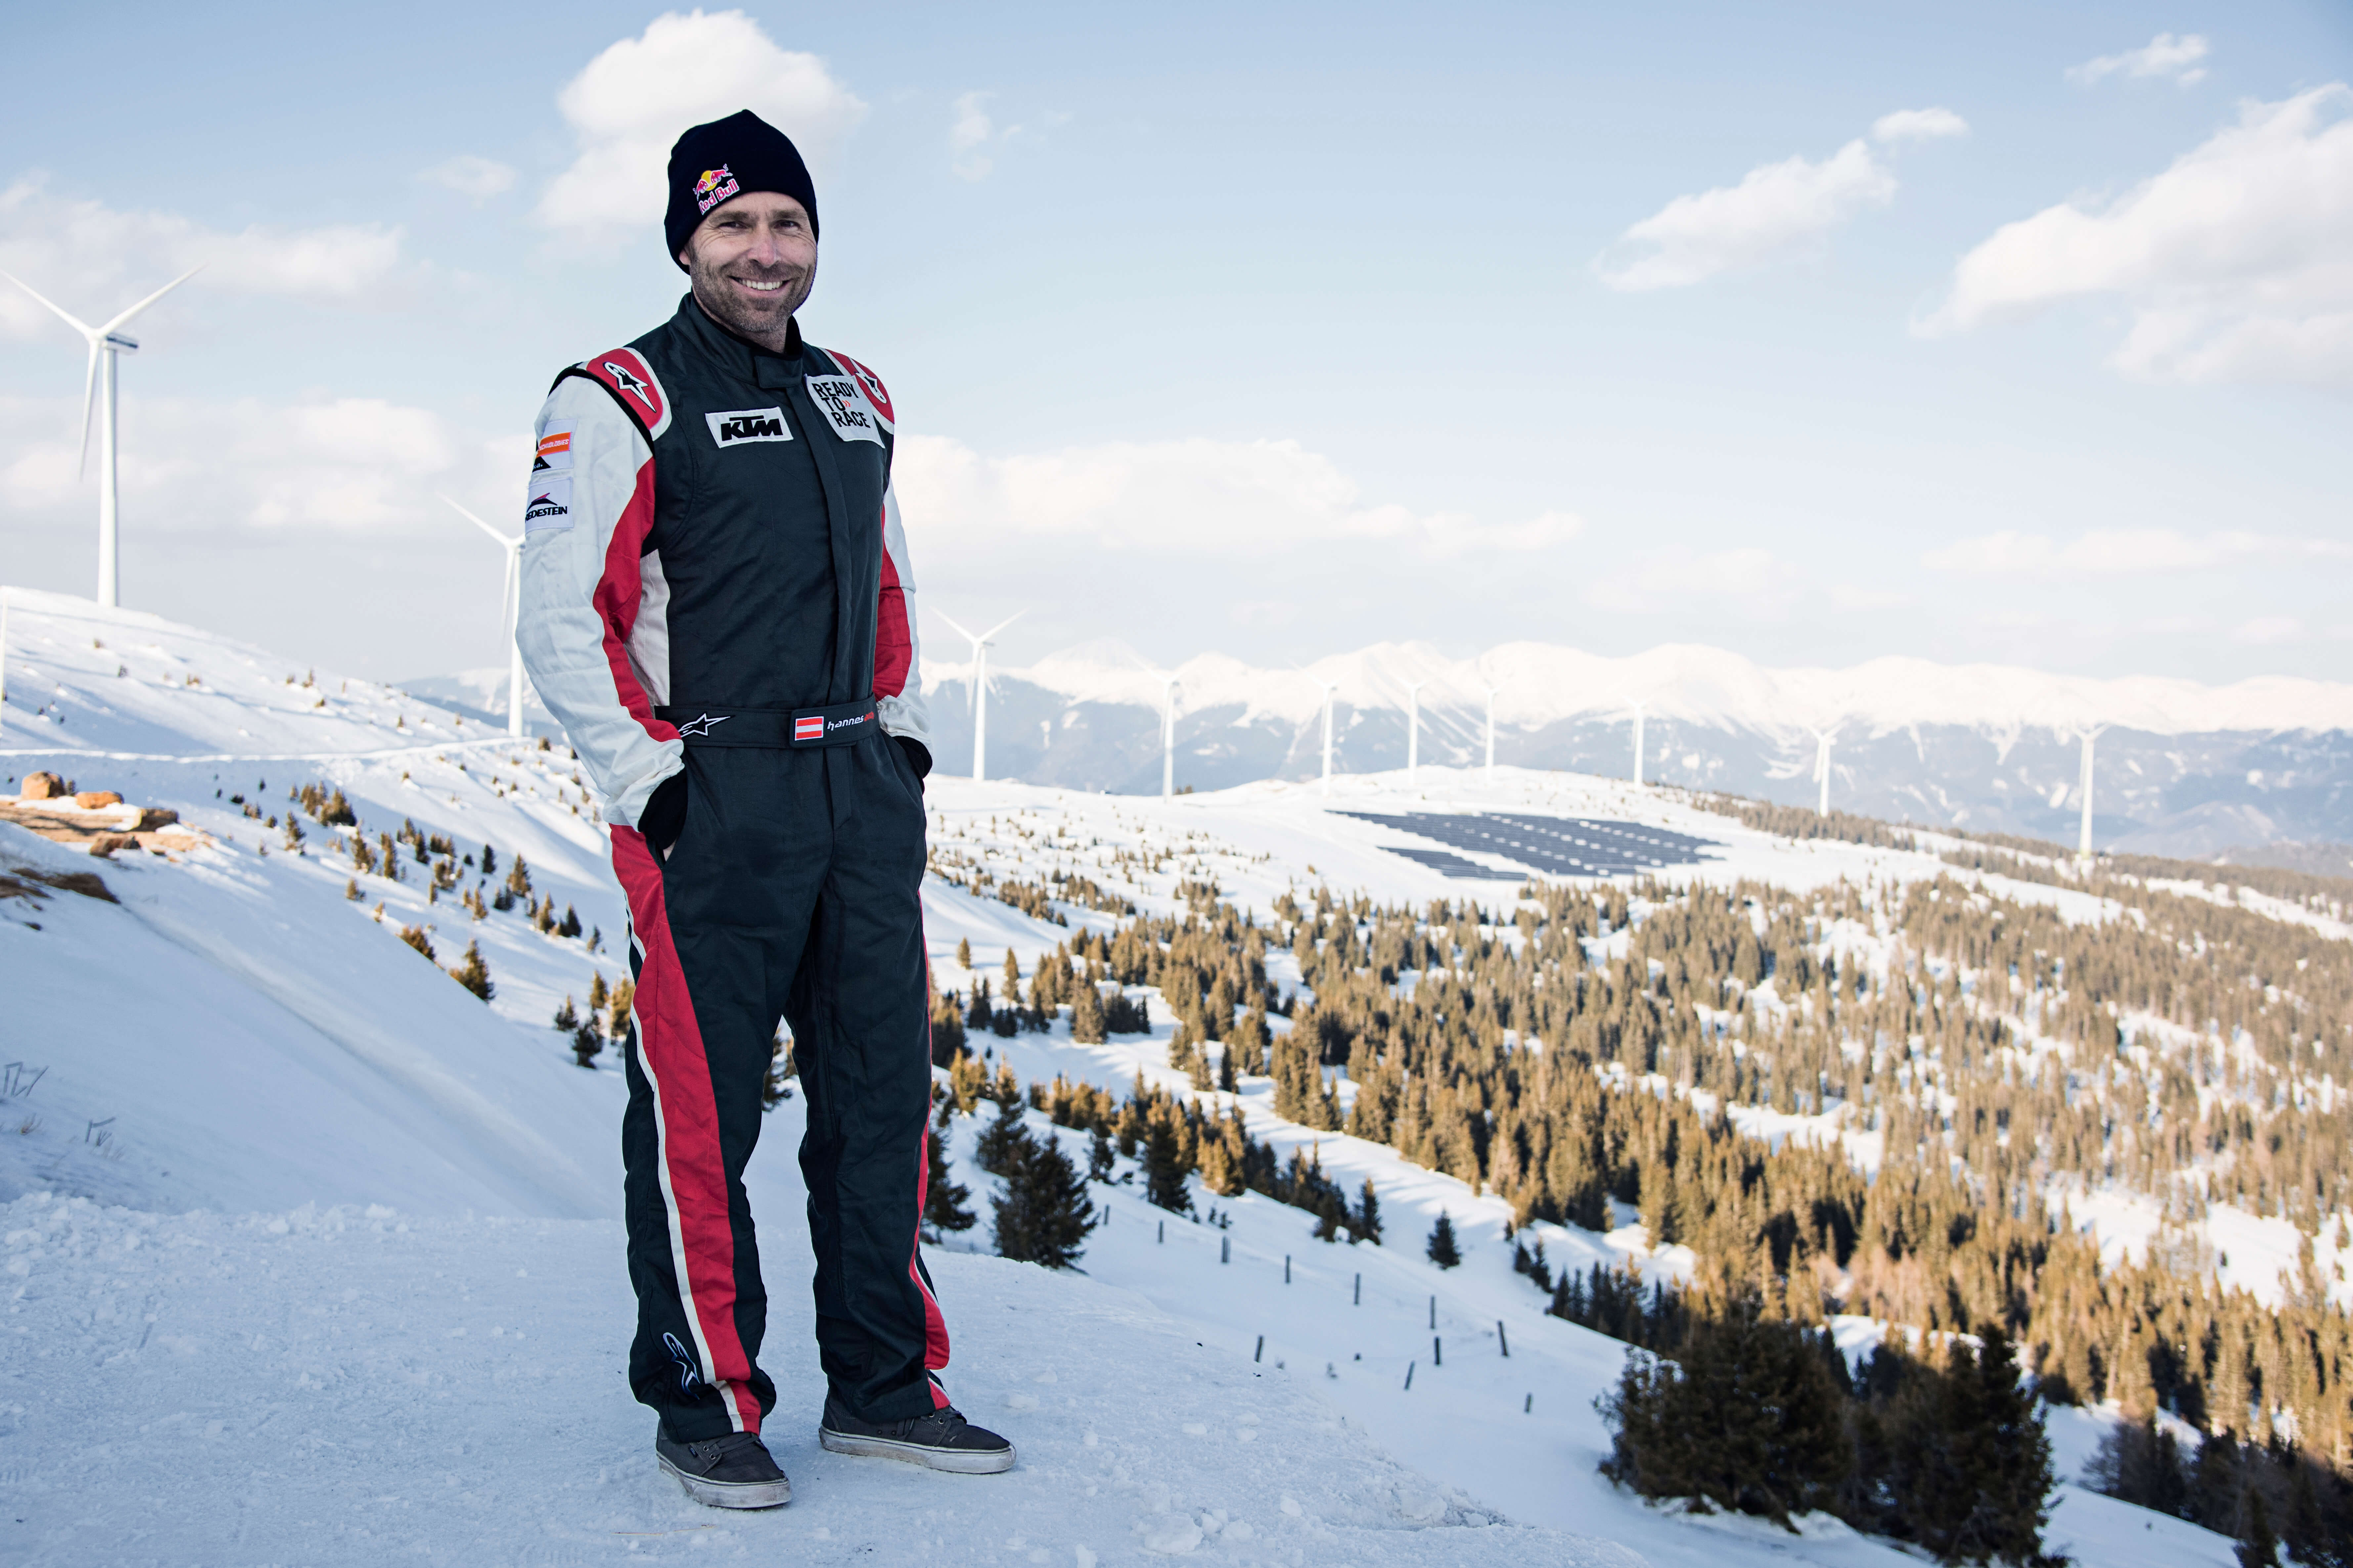 Hannes Arch poses for a portrait during the Windpark Rallye at the Windpark Hohe Tauern, Austria on March 20, 2016. // Markus Berger / Red Bull Content Pool // For more content, pictures and videos like this please go to www.redbullcontentpool.com